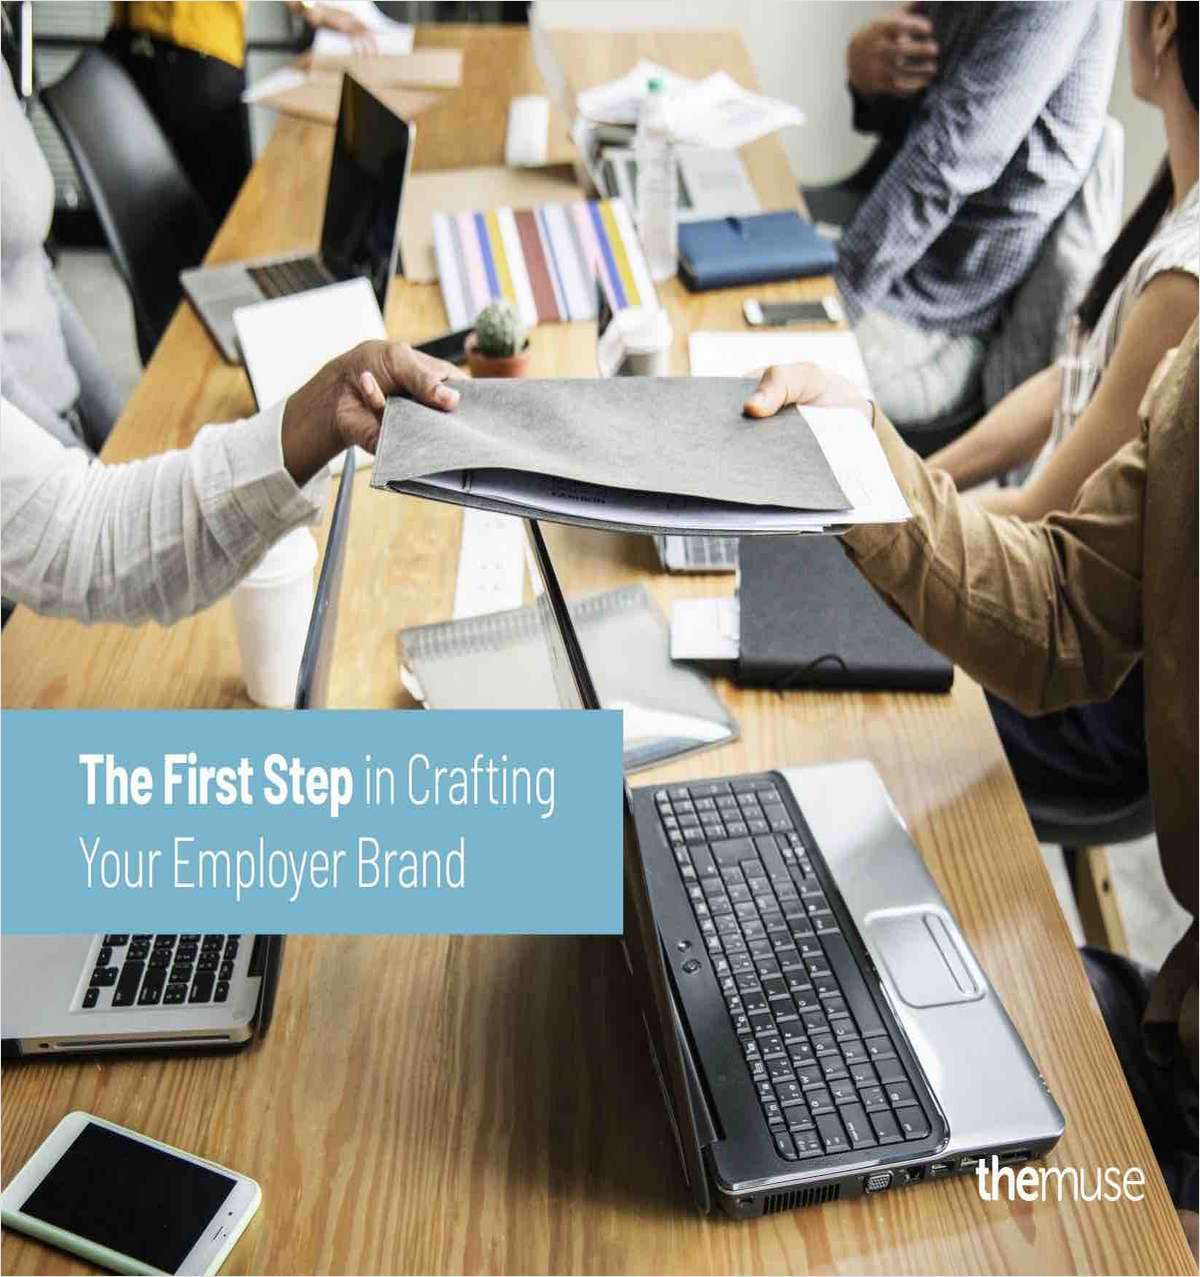 The First Step in Crafting Your Employer Brand